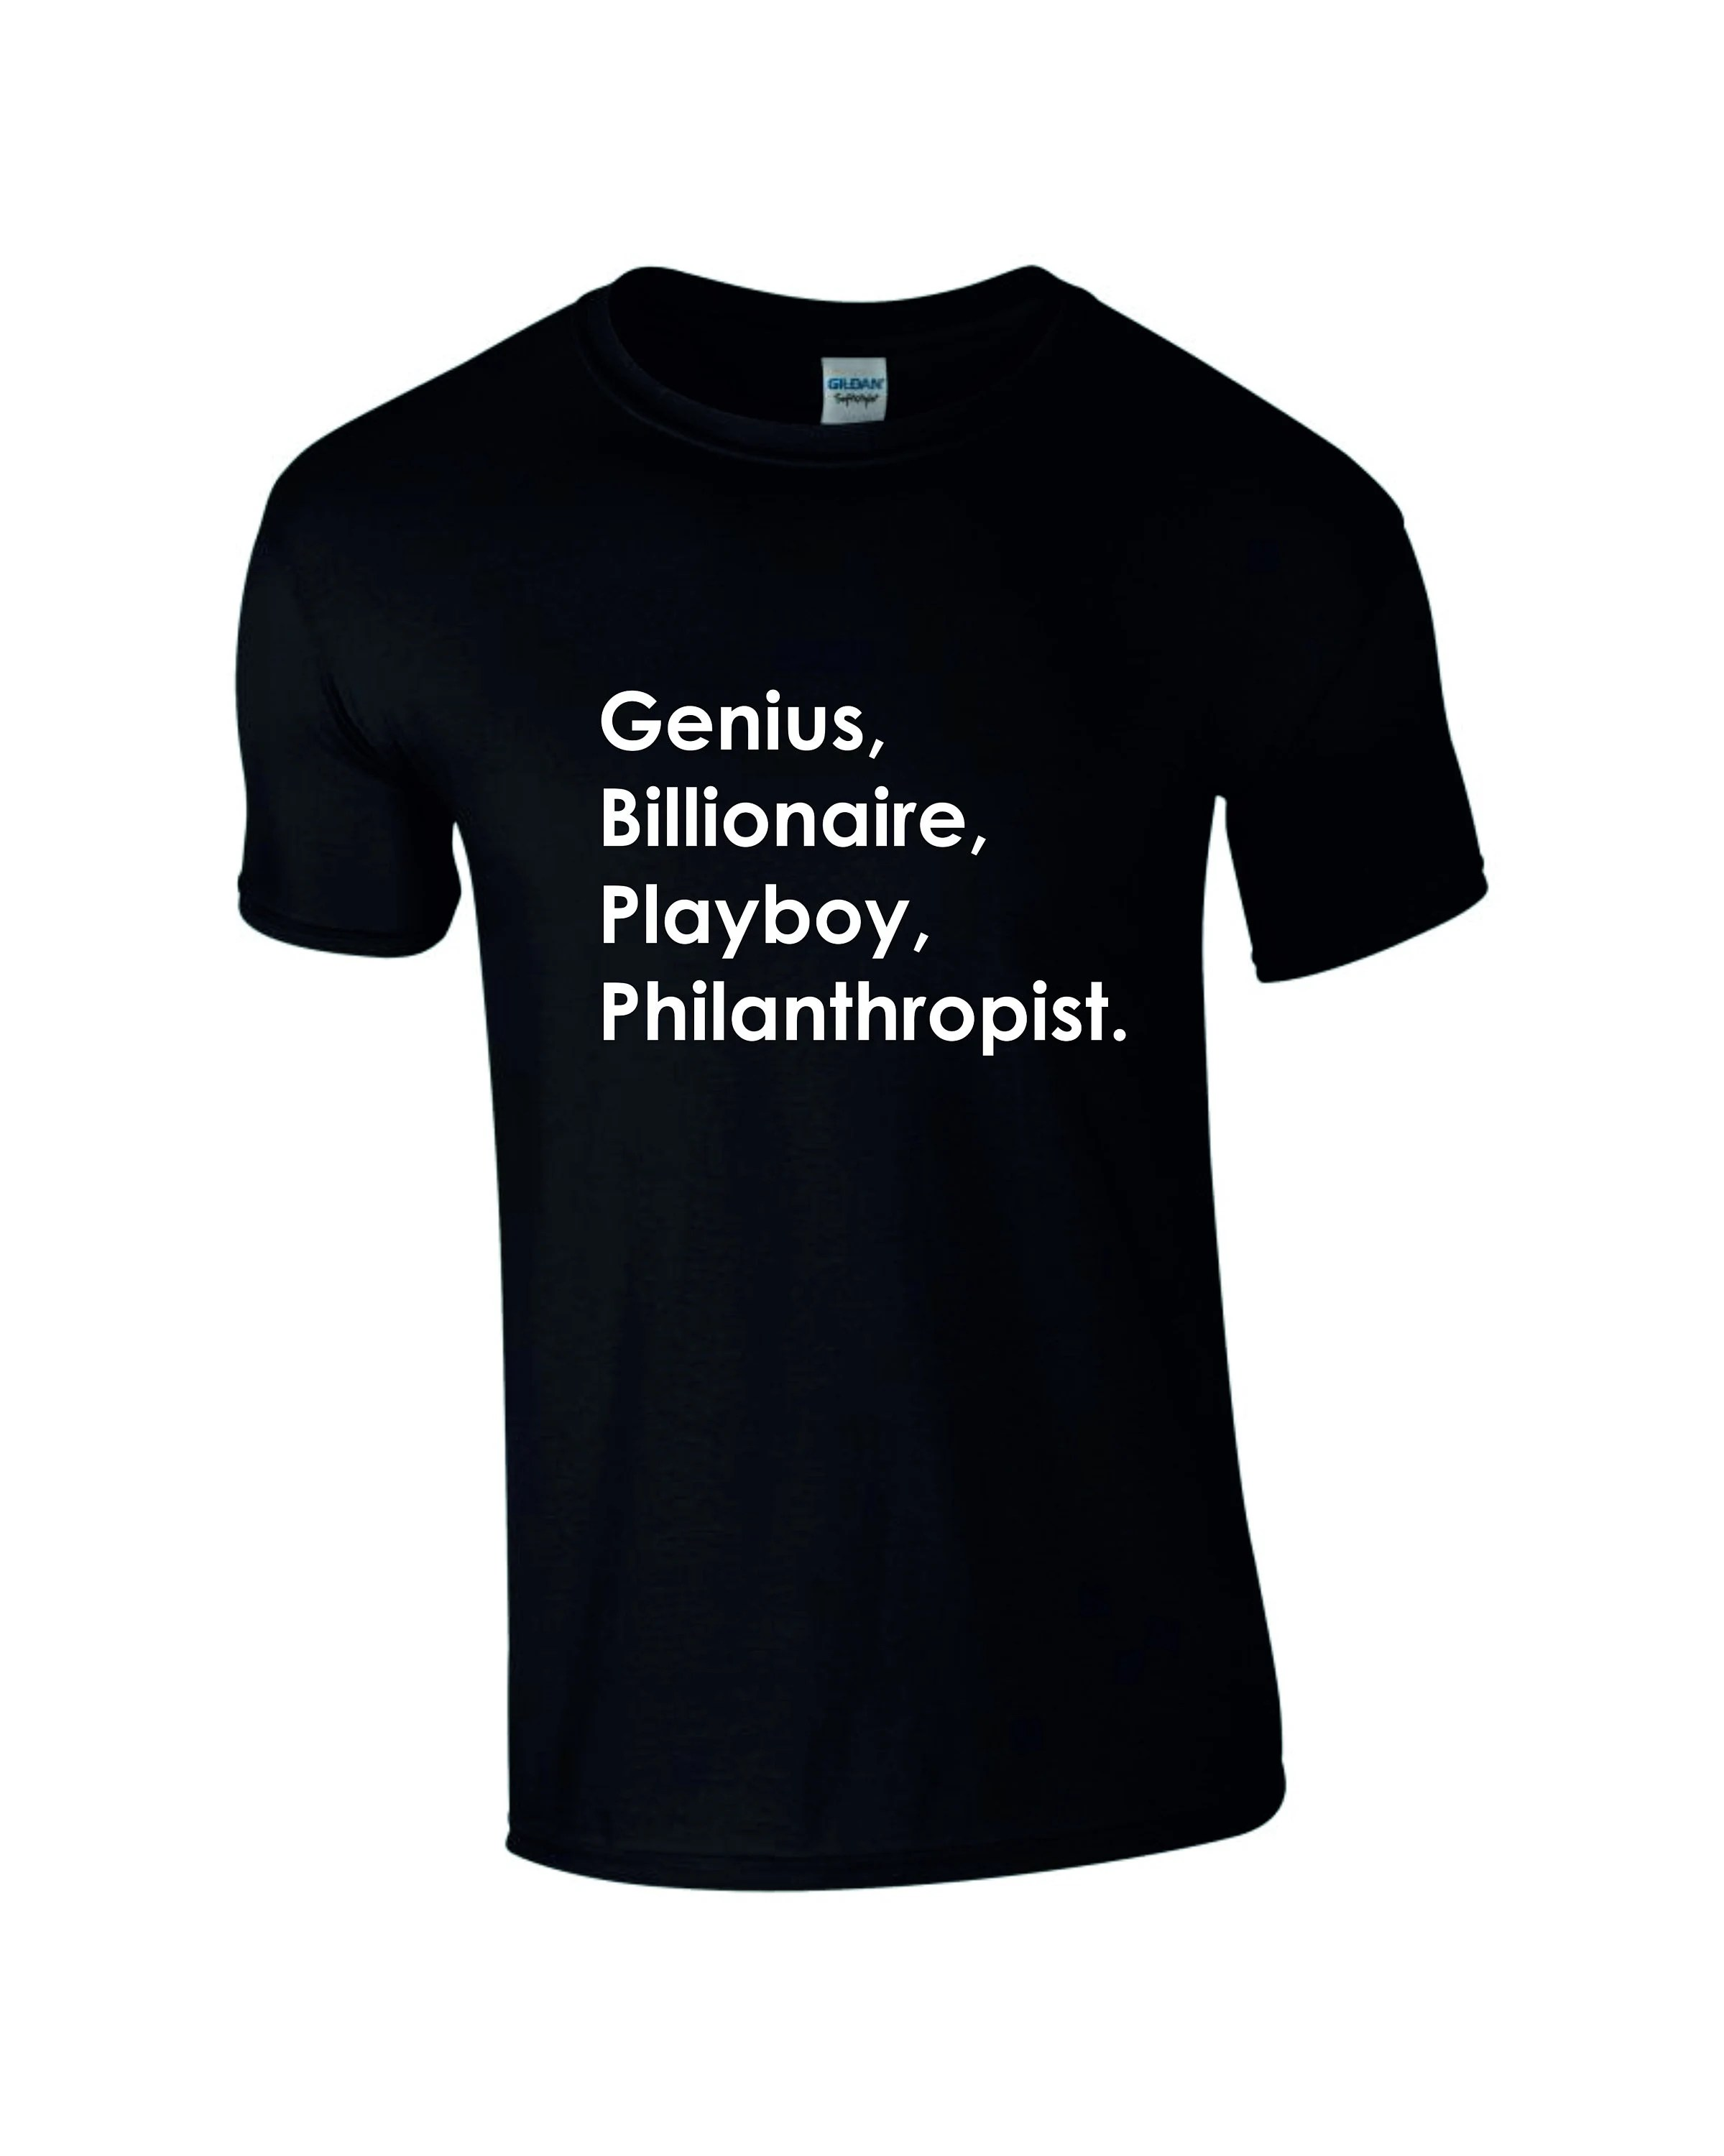 Genius Bambus Kissen Genius Billionaire Playboy Philanthropist Ironman Quote T Shirt